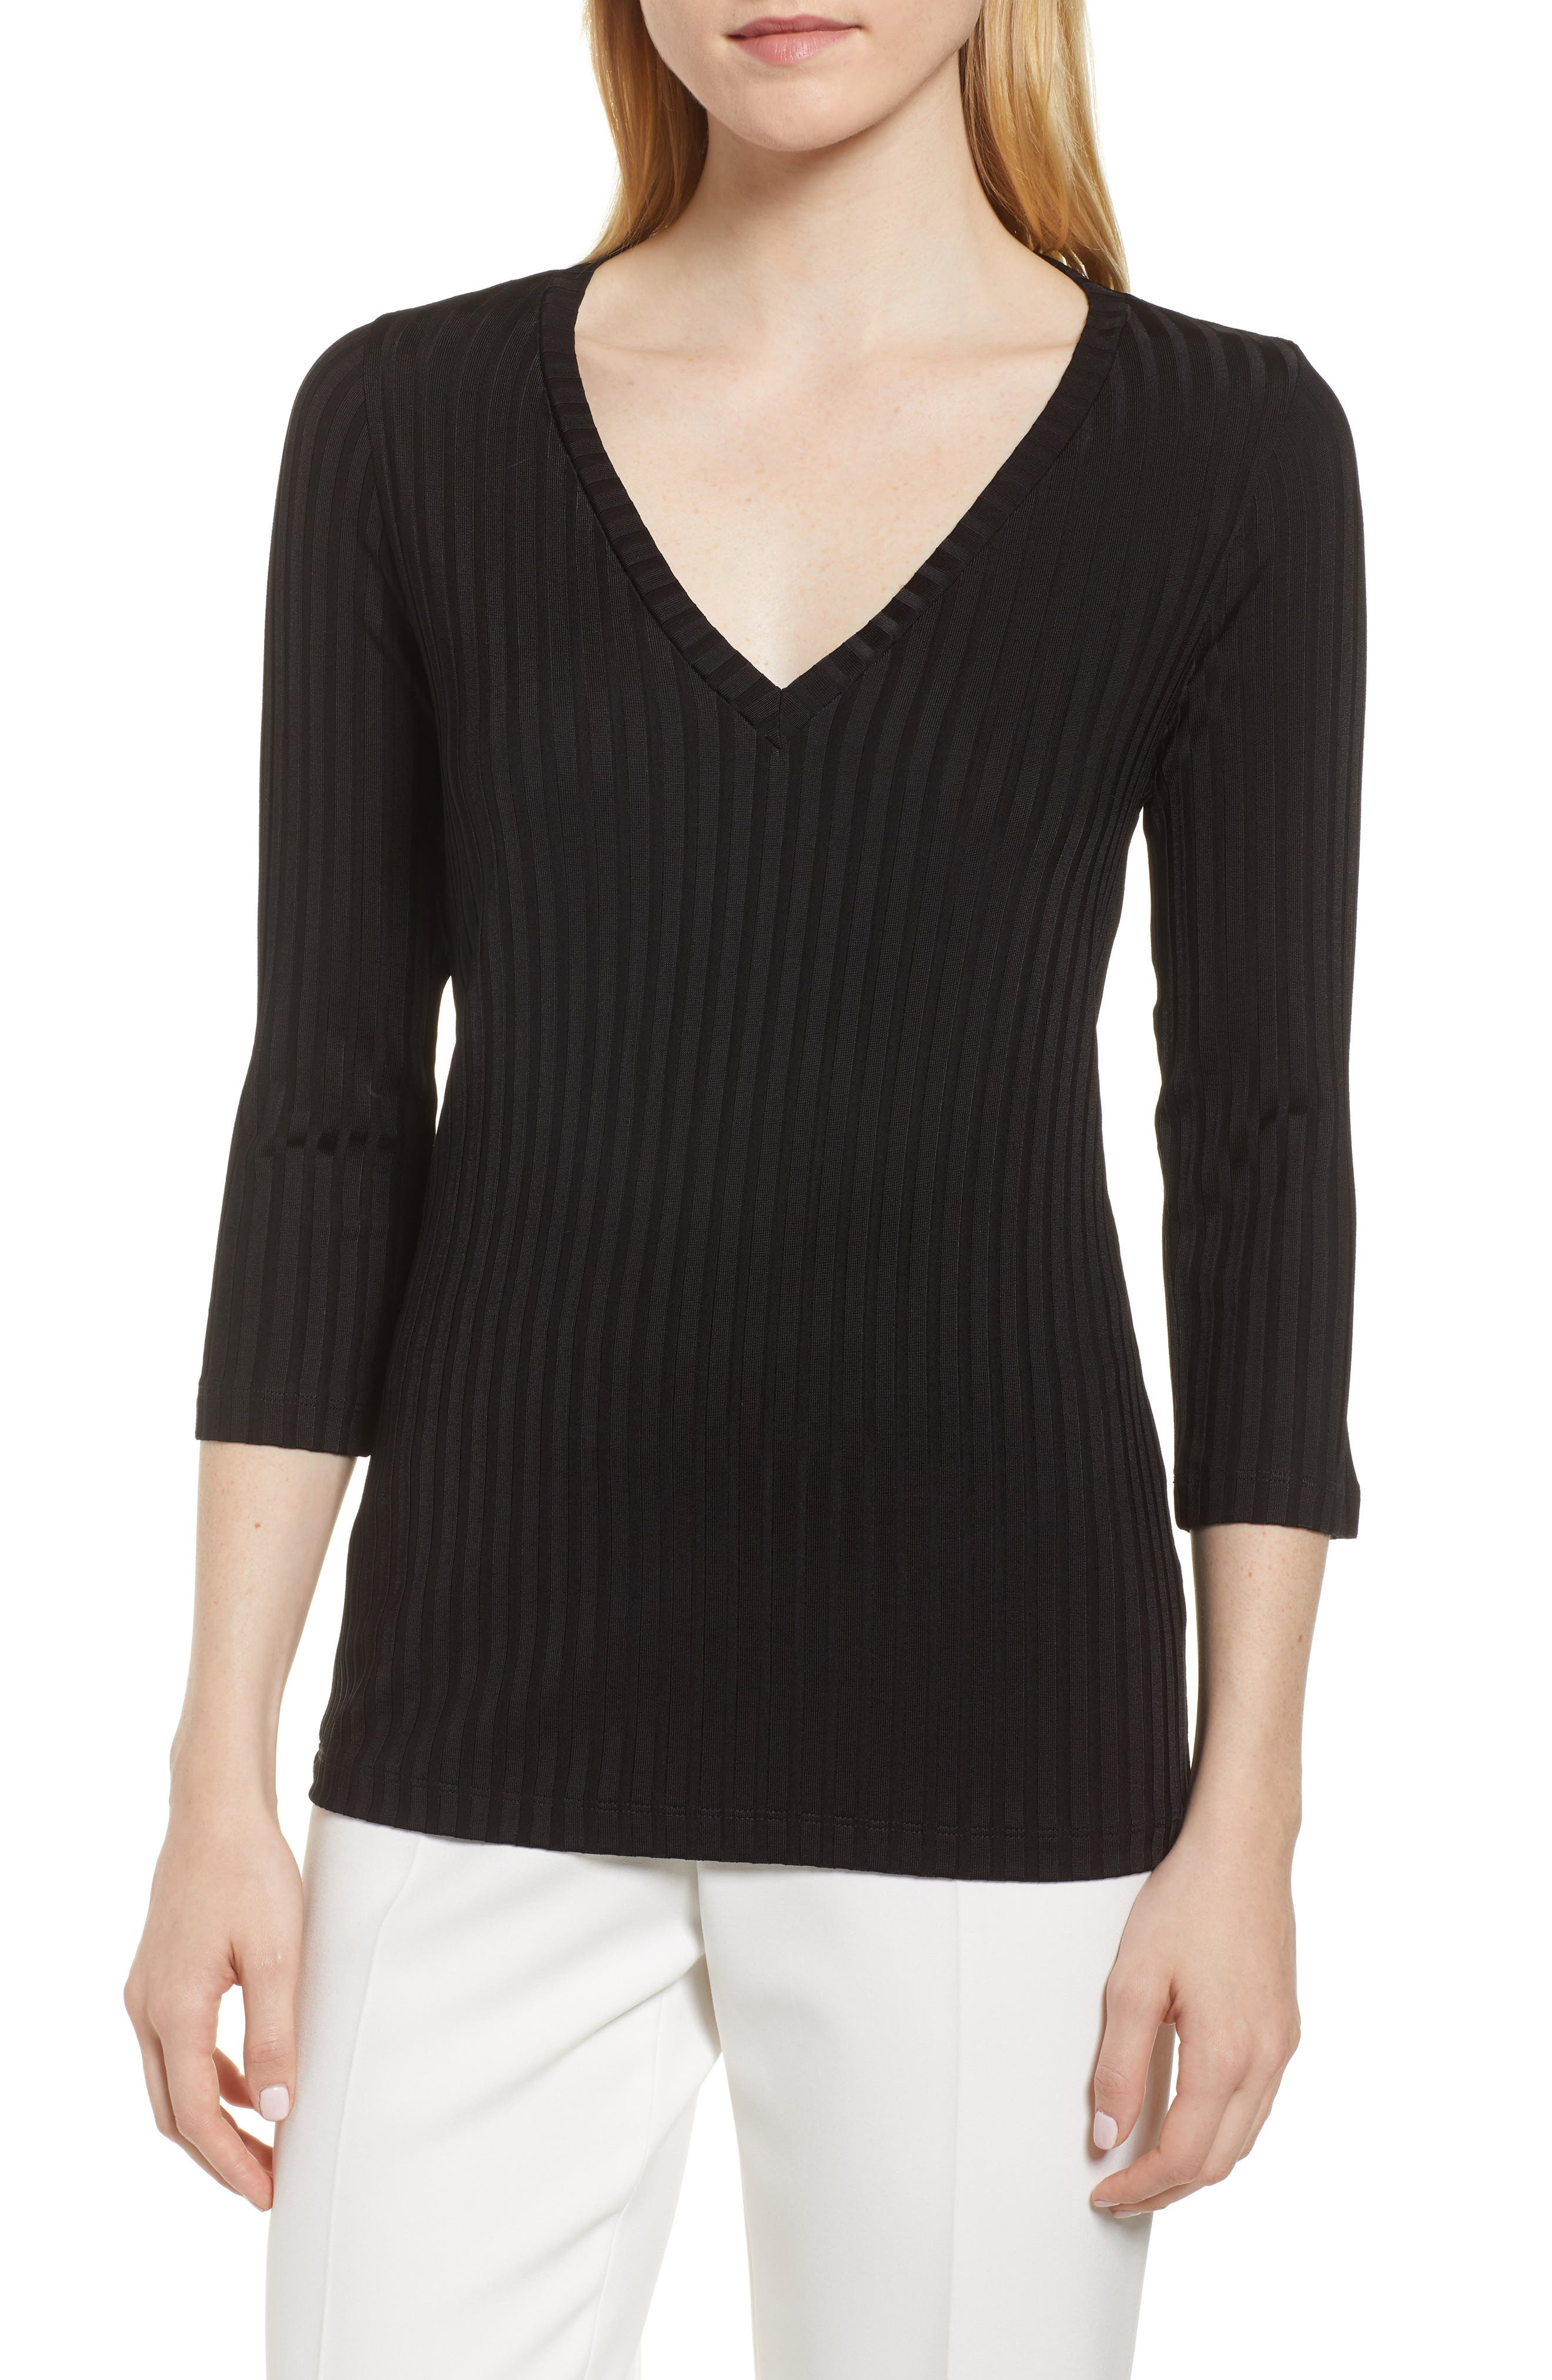 Etrica Ribbed Sweater,                         Main,                         color, 001